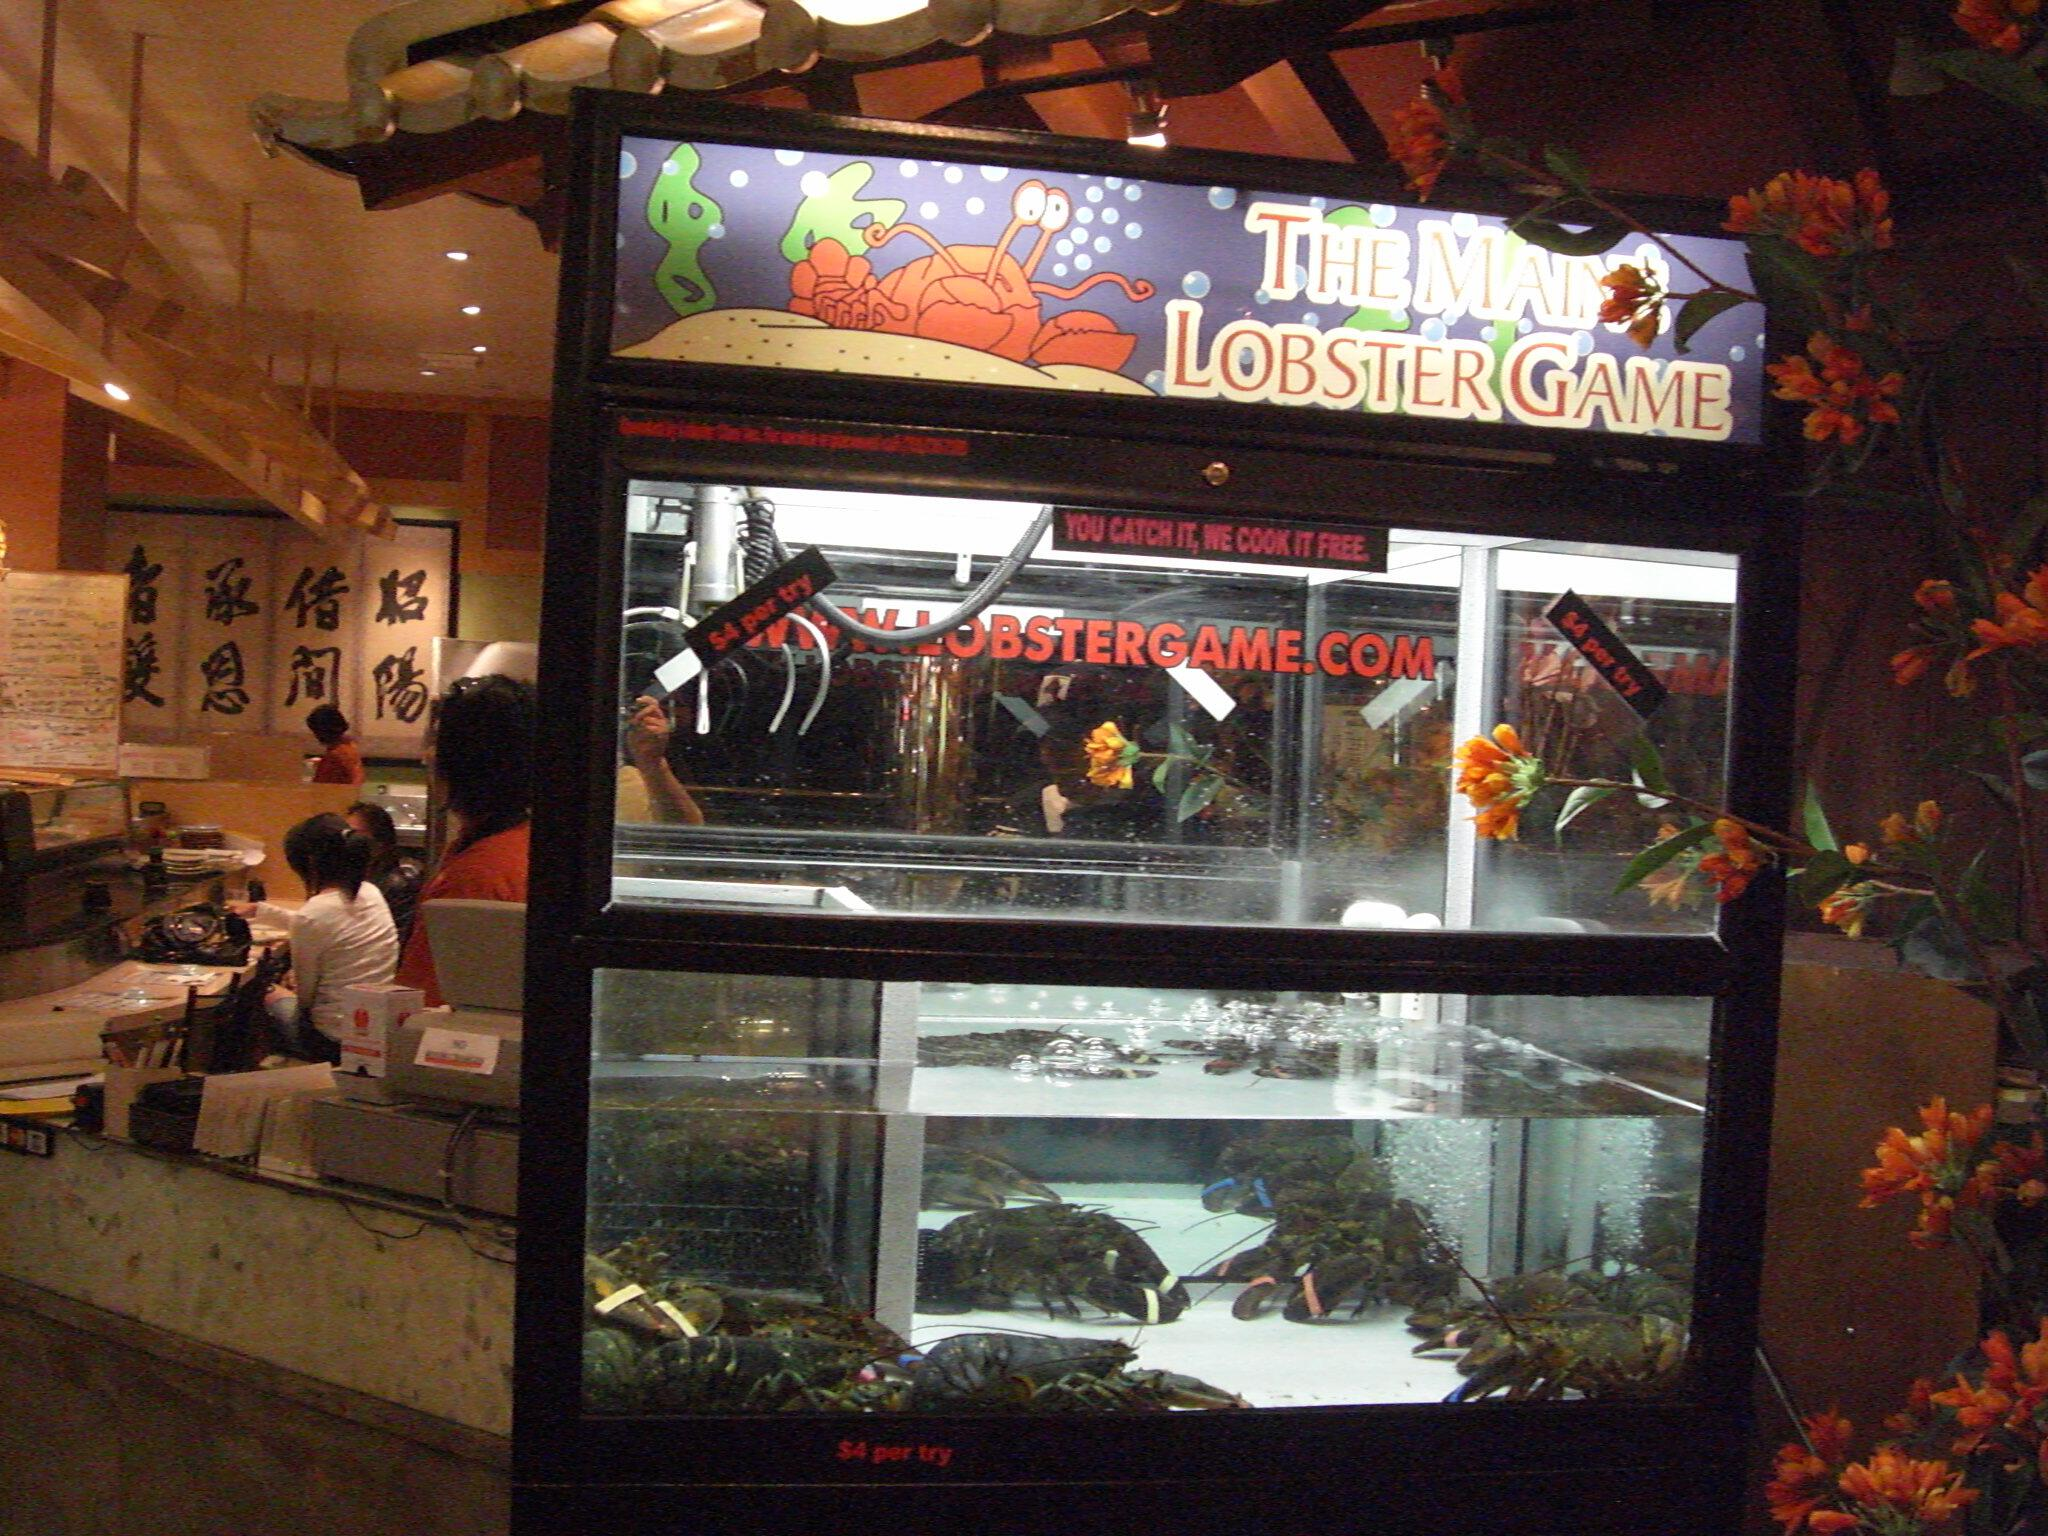 The Maine Lobster Game Bally's Las Vegas